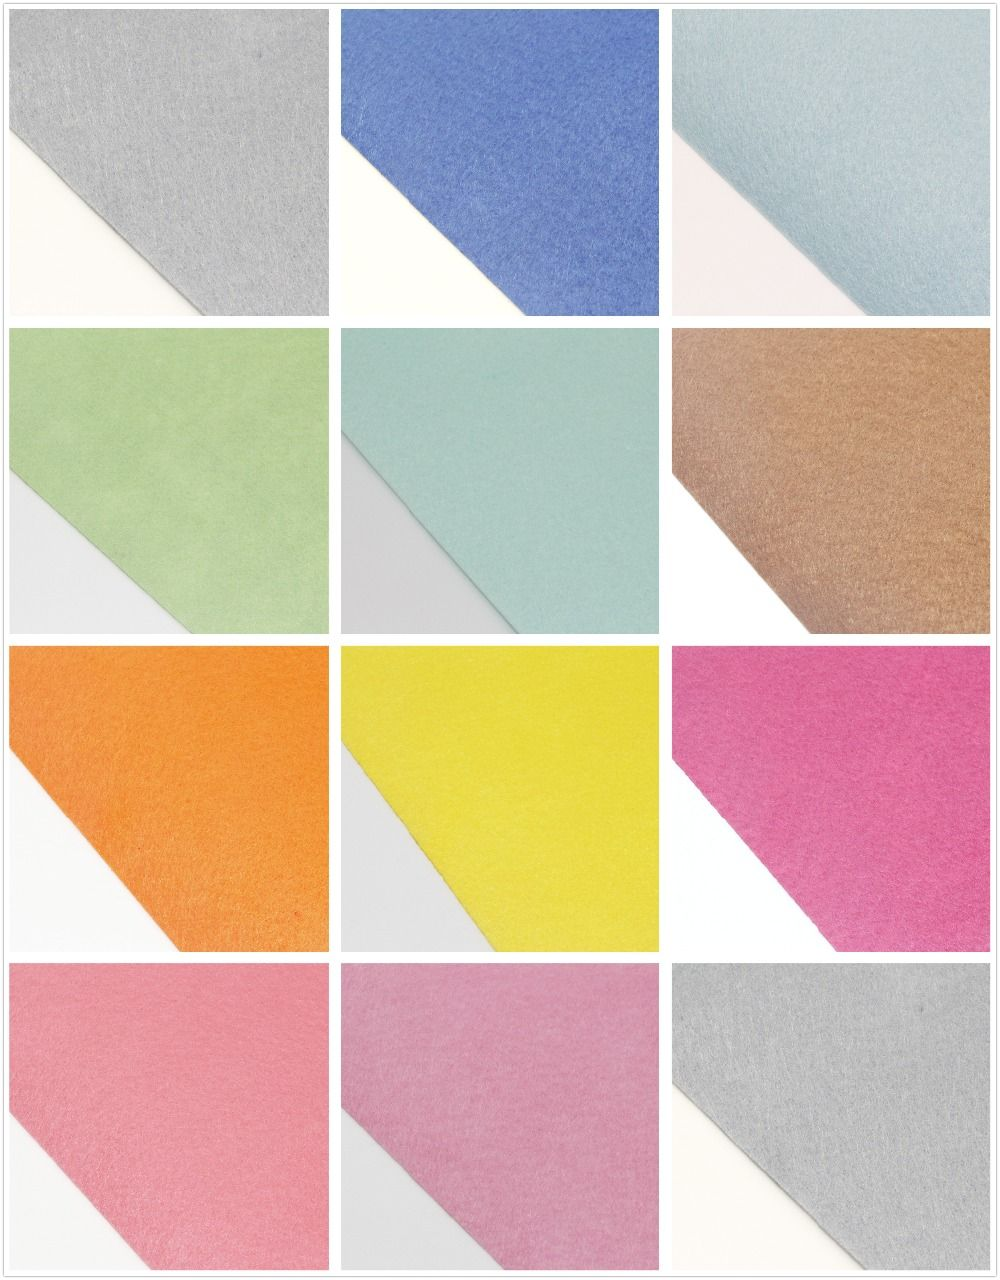 Diy felt fabric colors set each xcmcan choose colorwith